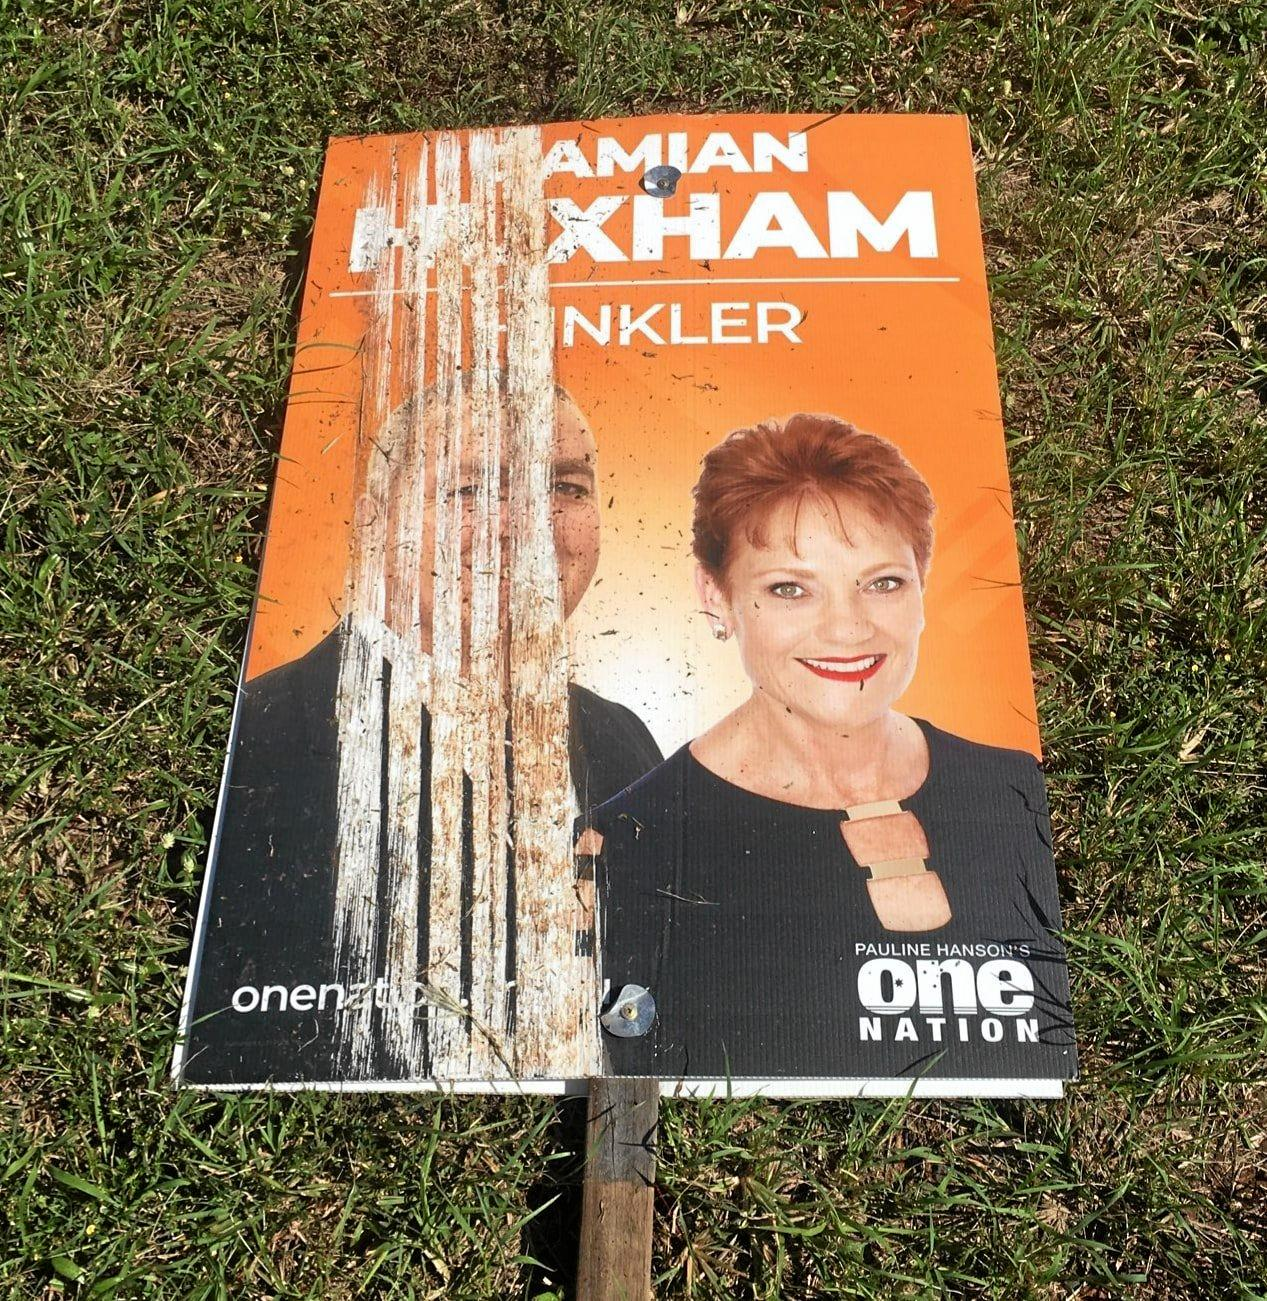 About 40 corflutes belonging to One Nation's Hinkler candidate Damian Huxham have been damaged by vandals.